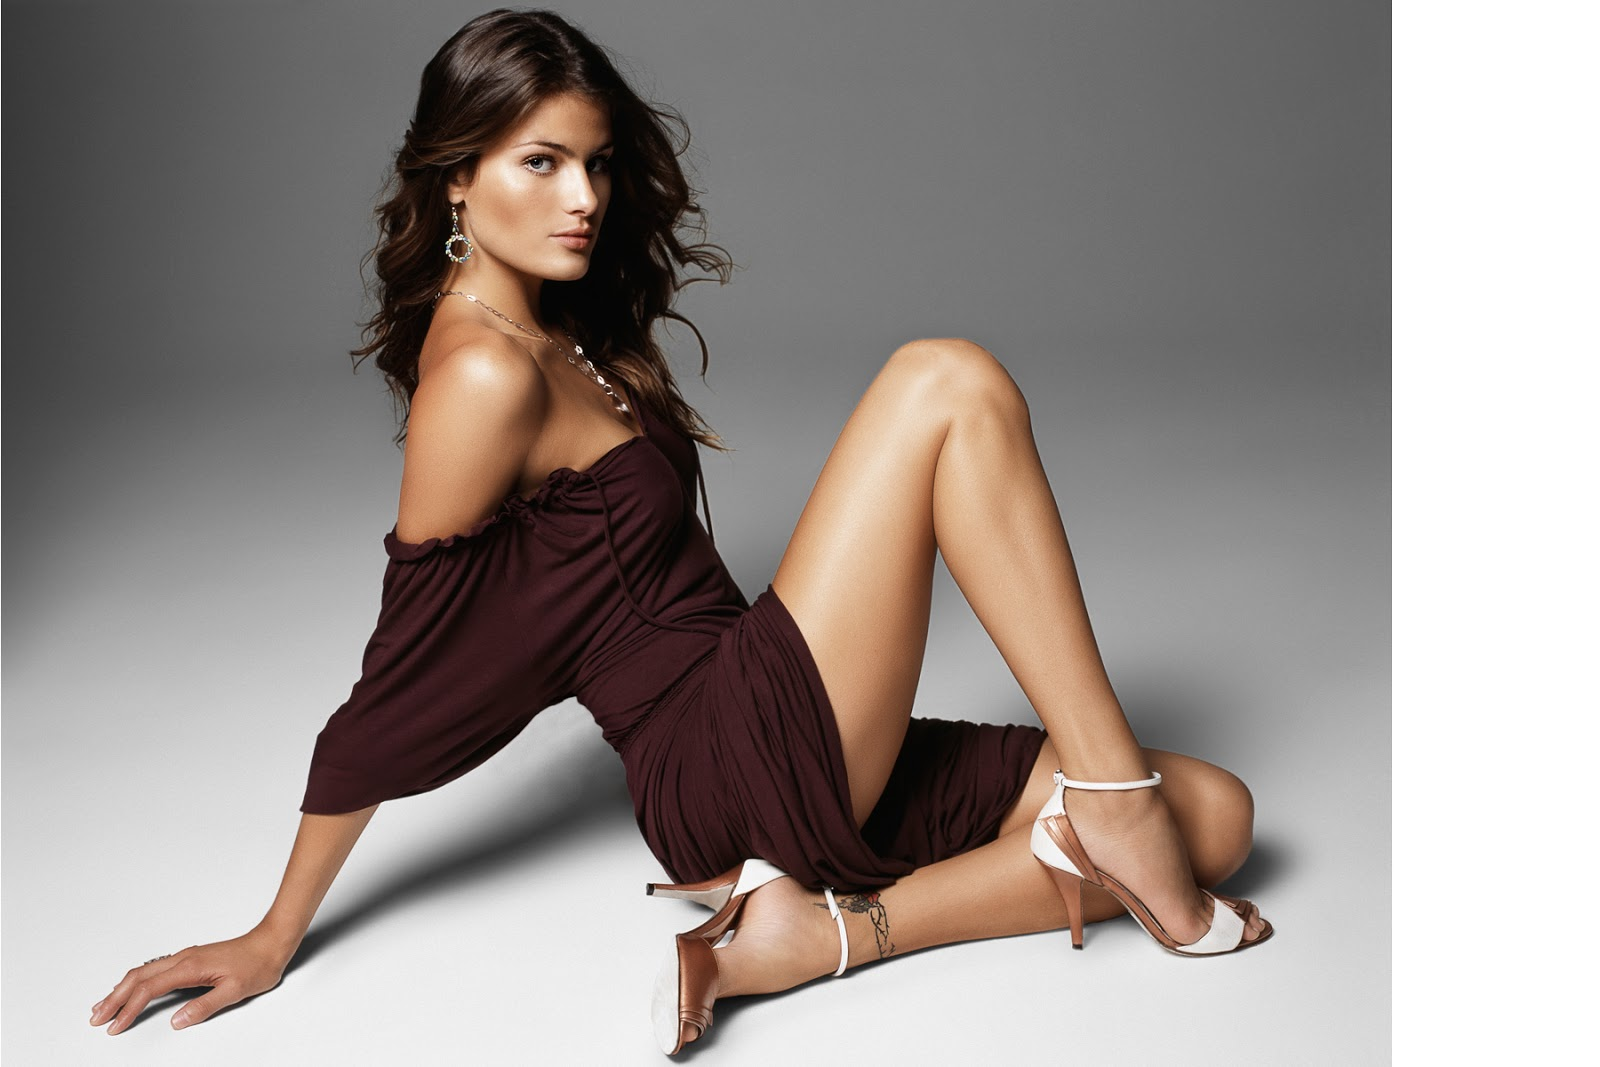 Isabeli Fontana Wallpaper - Isabeli Fontana Wallpaper